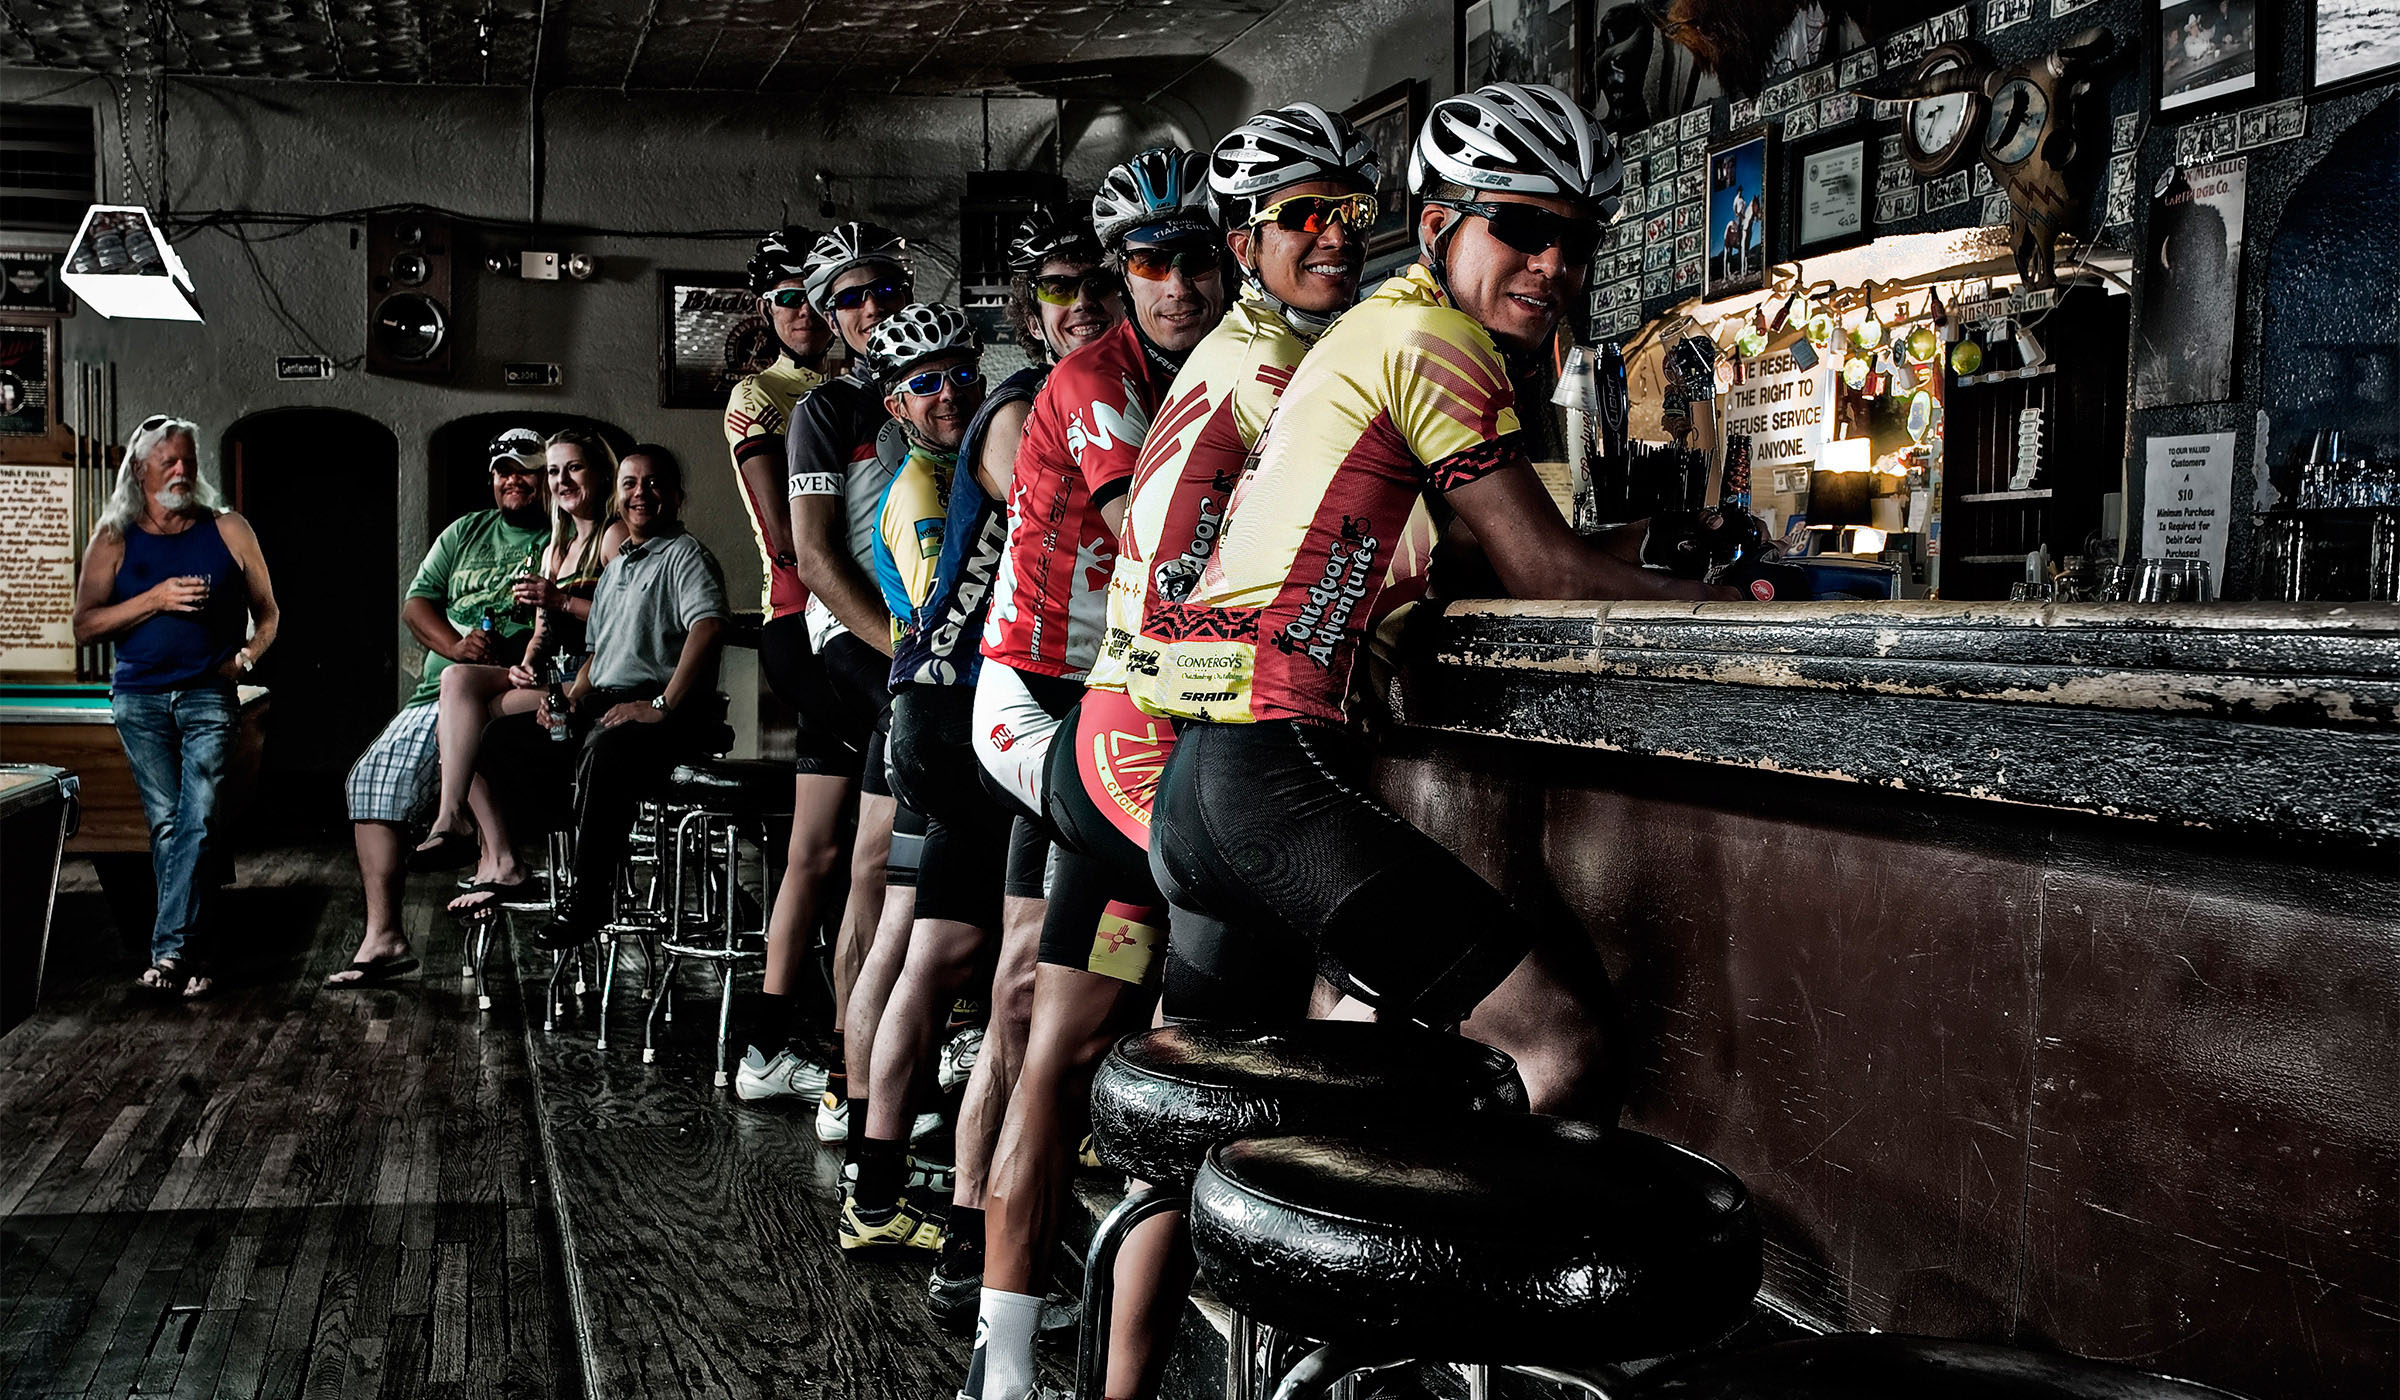 Biker Bar the Buffalo Bar Silver City Cyclists trade lycra for leathers  Wick Beavers Portrait